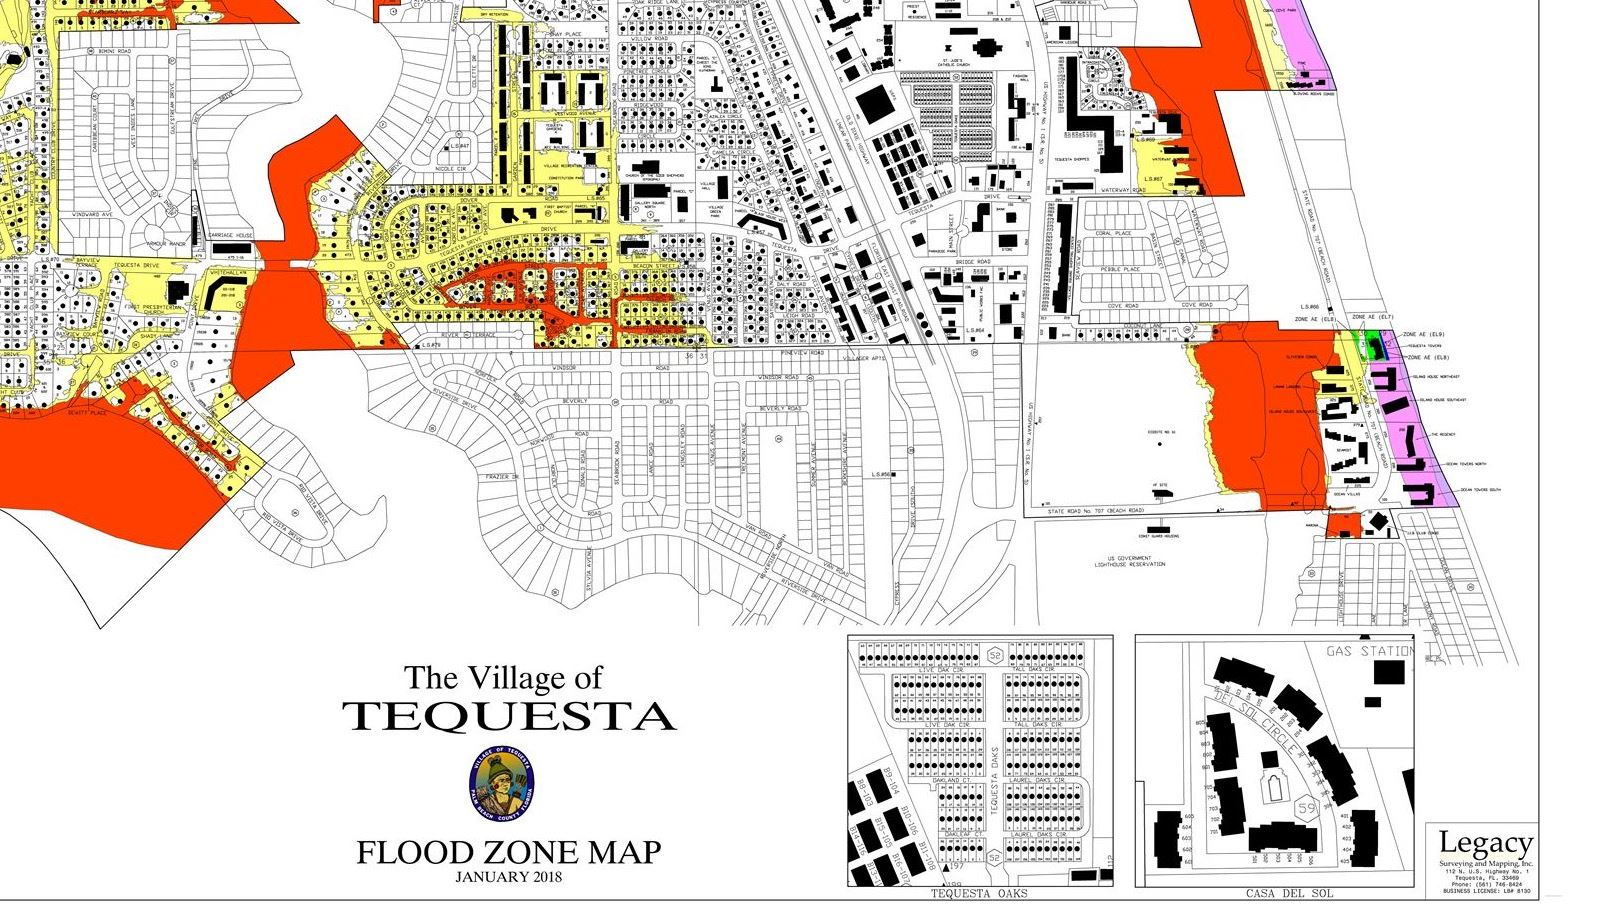 Tequesta Flood Zone Map